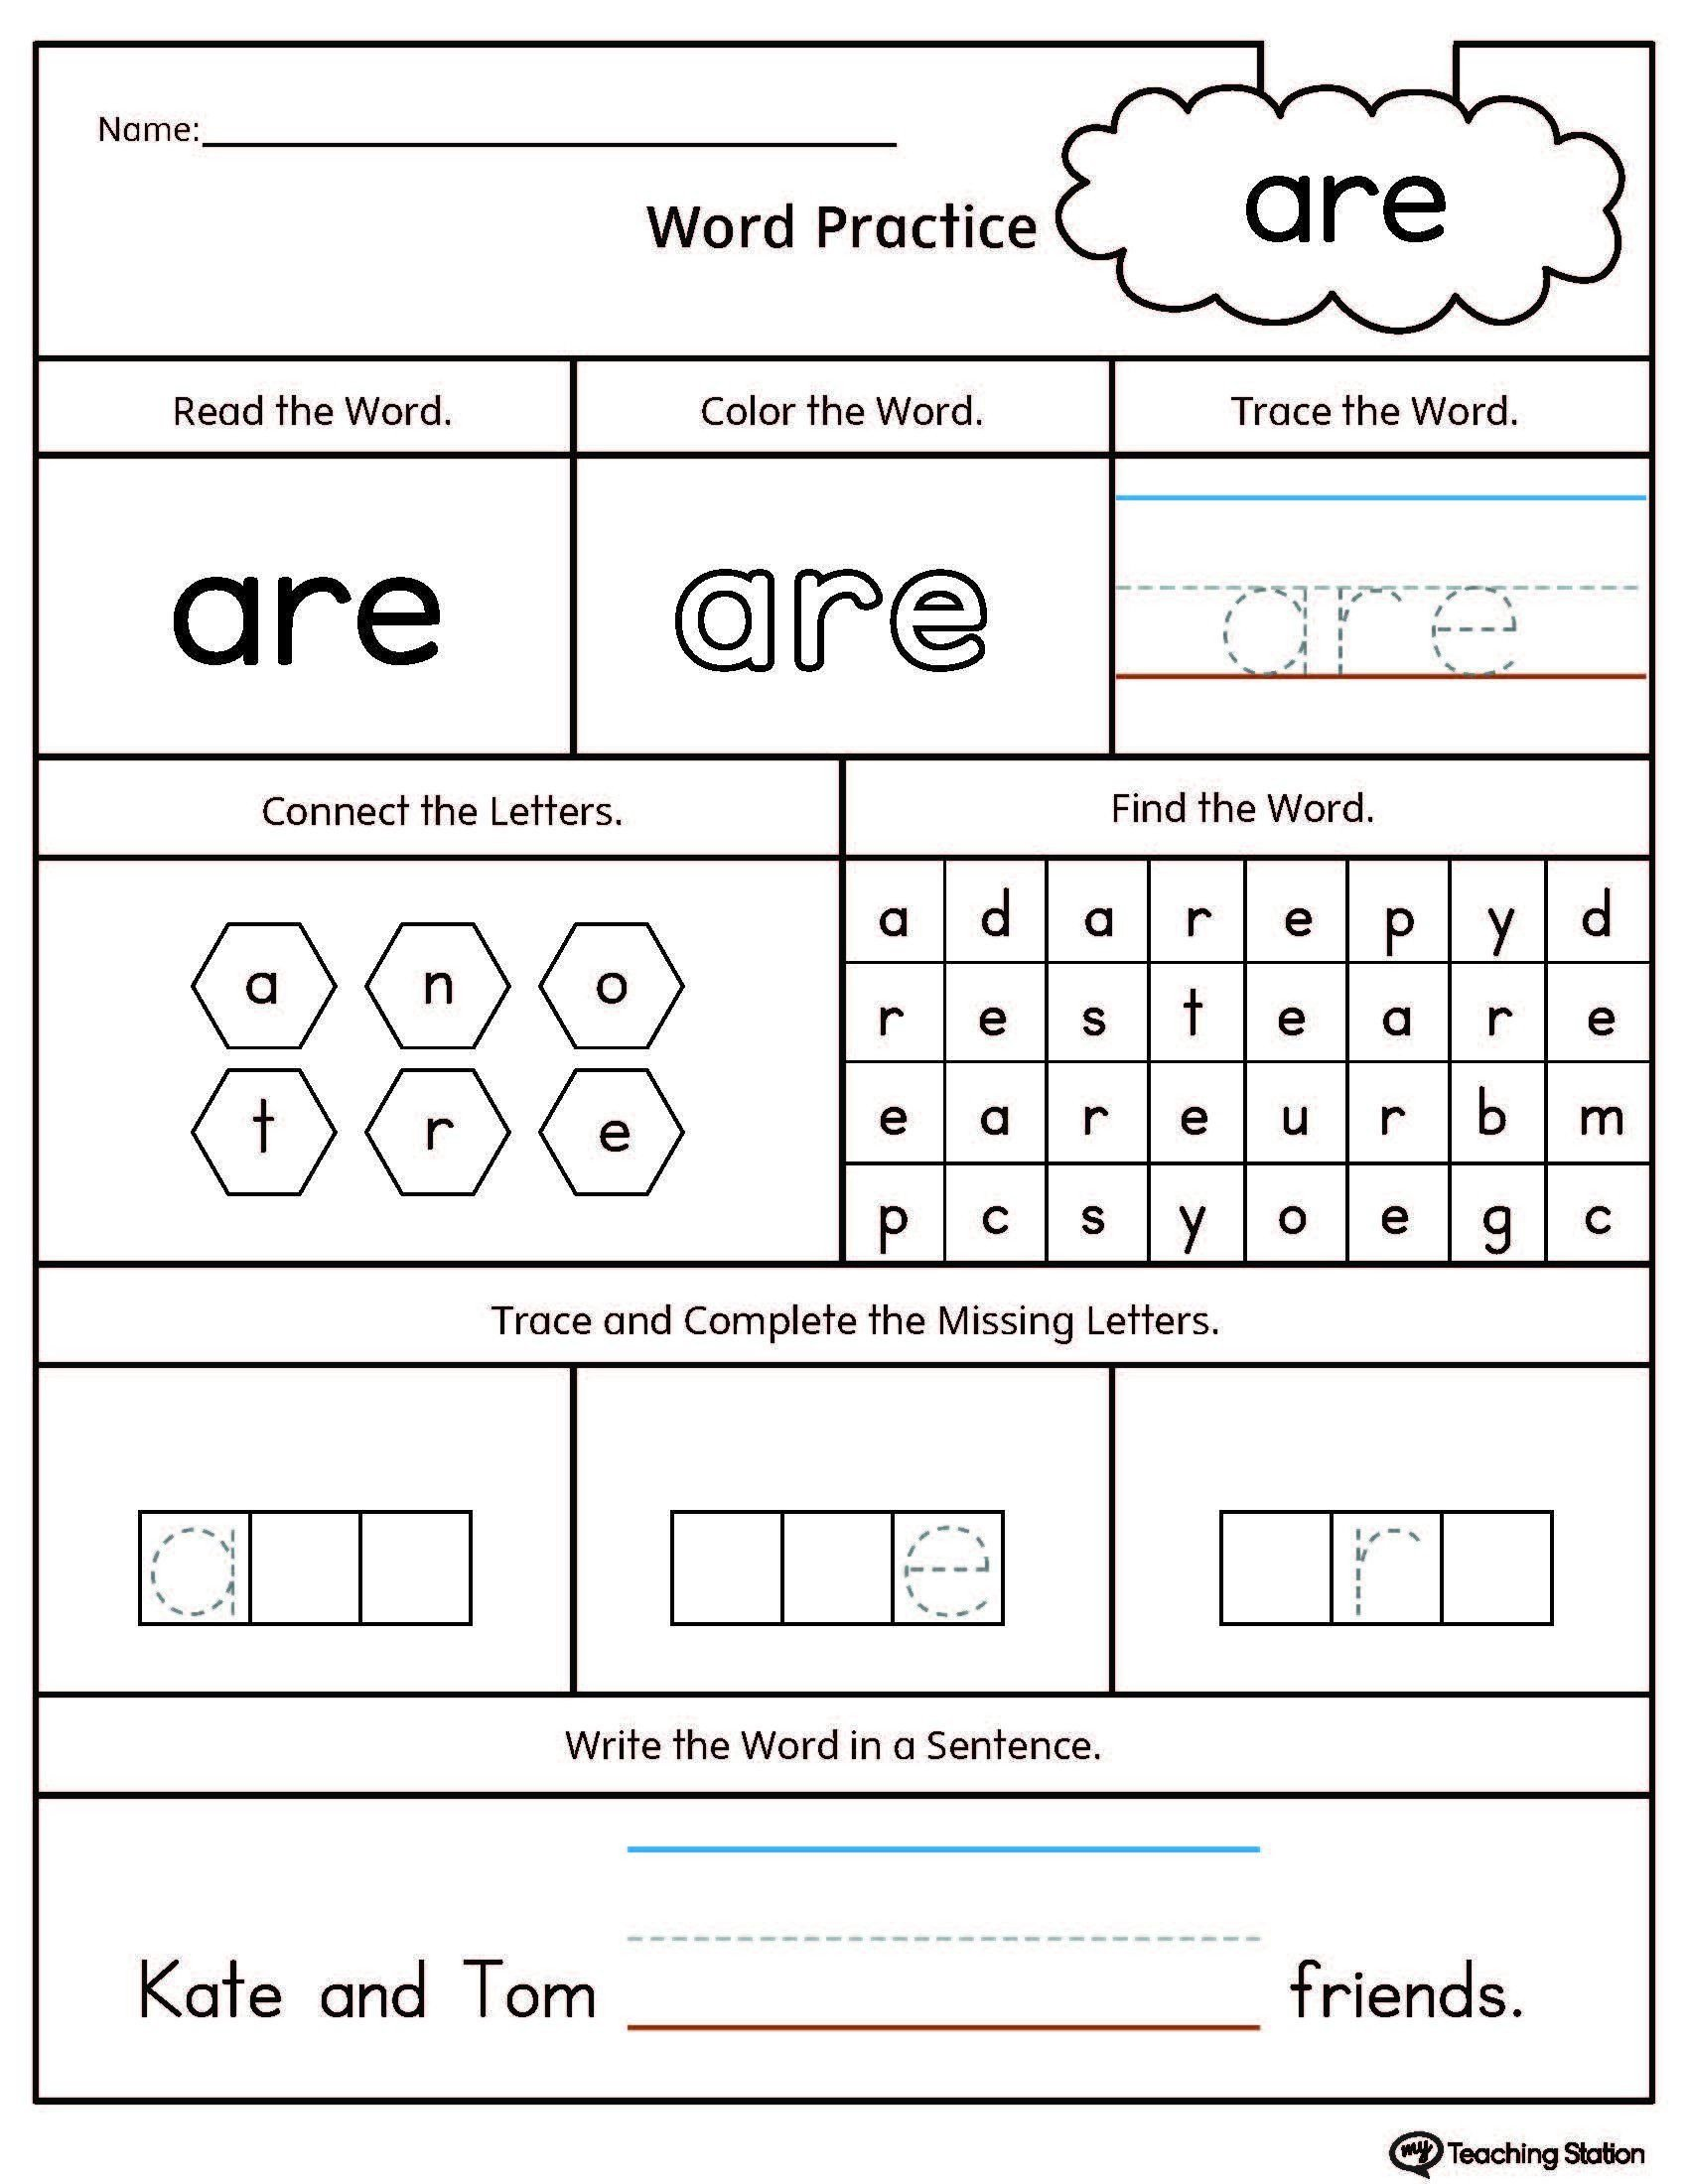 Word Problems Kindergarten Worksheets Word Problems for Kindergarten Worksheets Kindergarten High